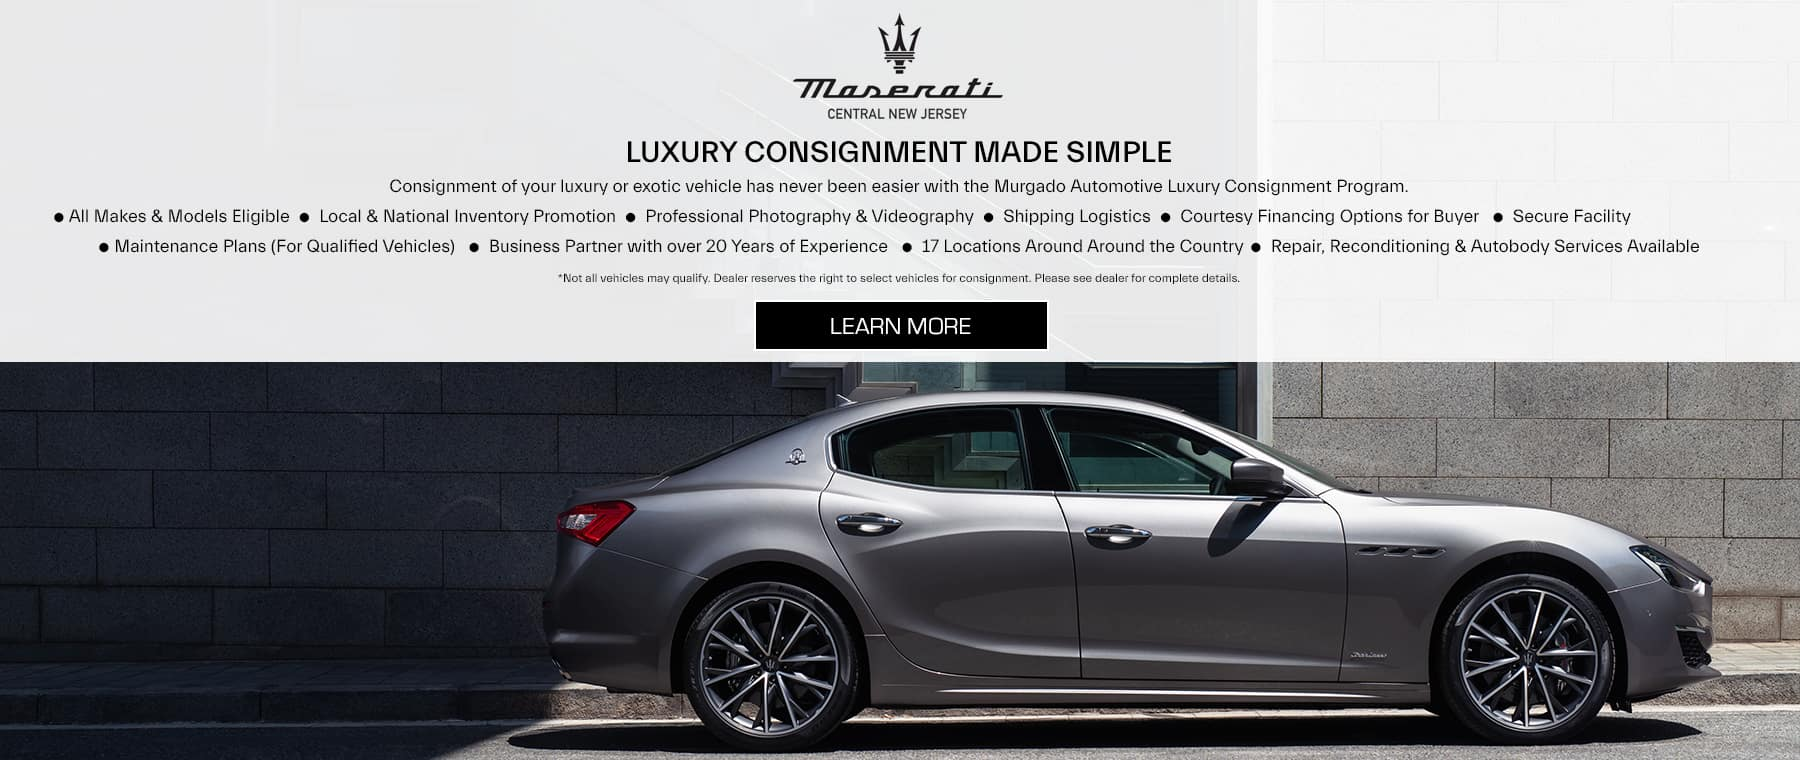 MaseratiRevised-CNJ (1)